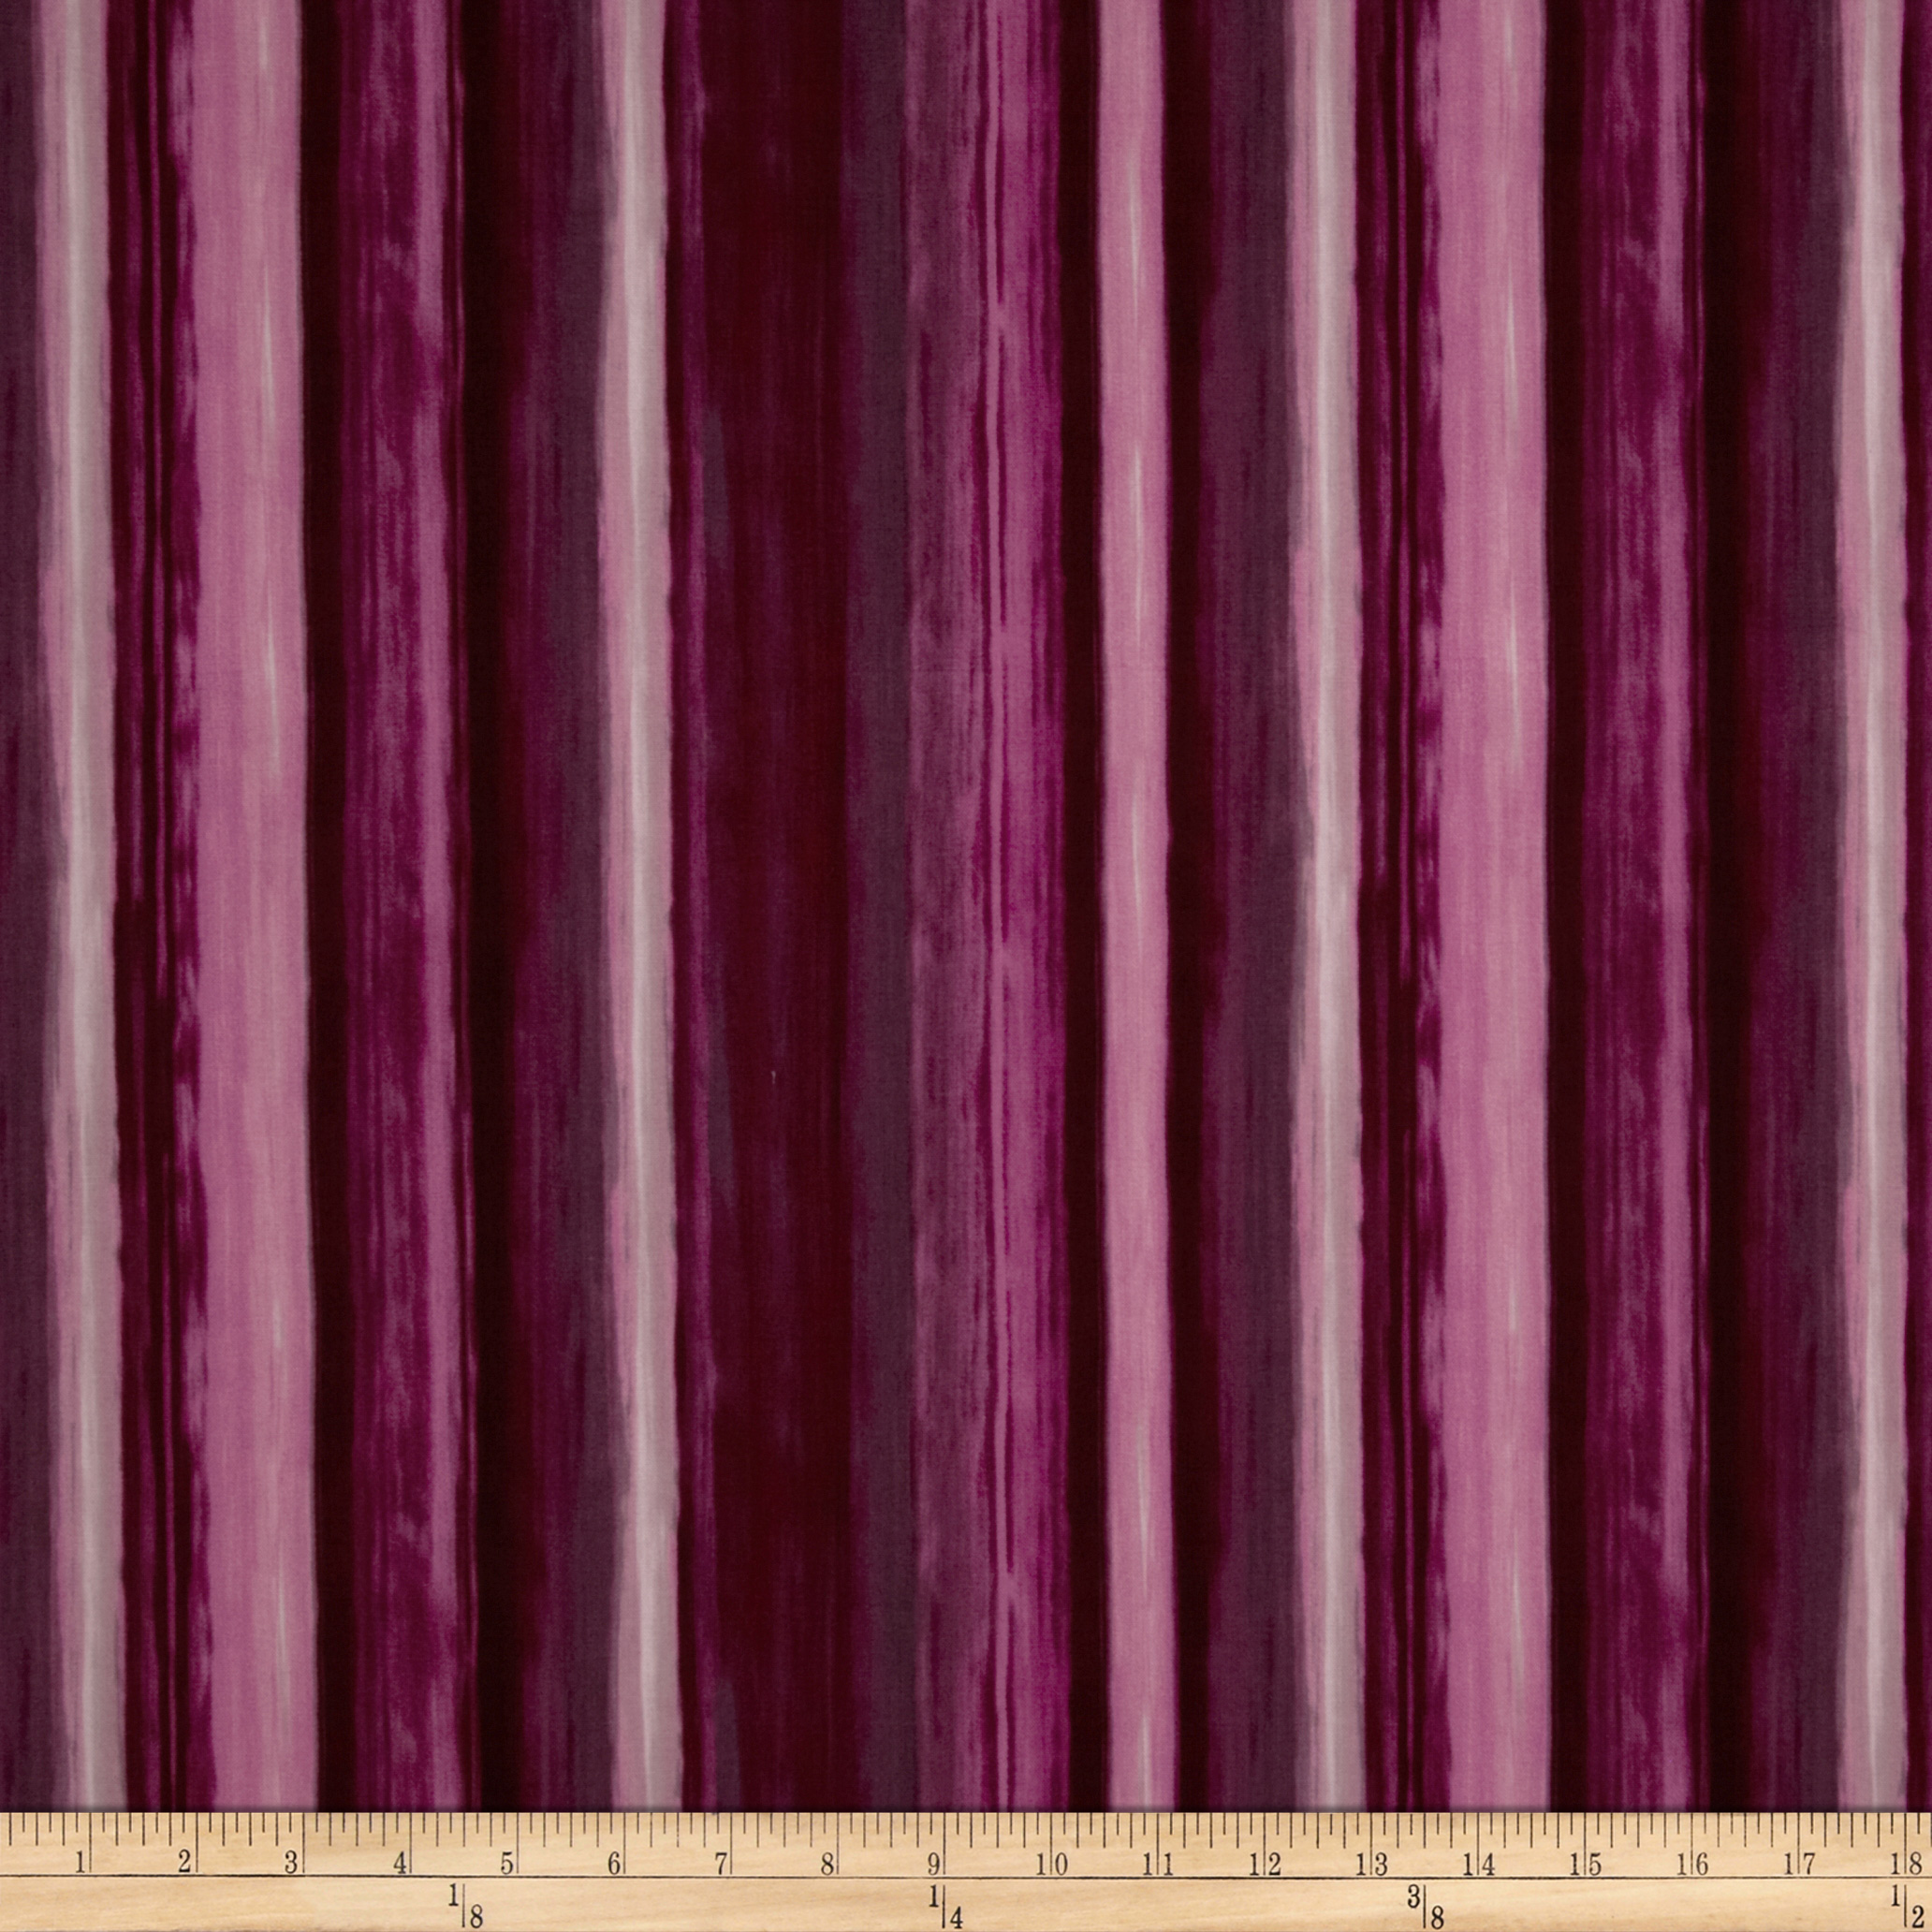 Studio Stash Water Stripe Berry Fabric